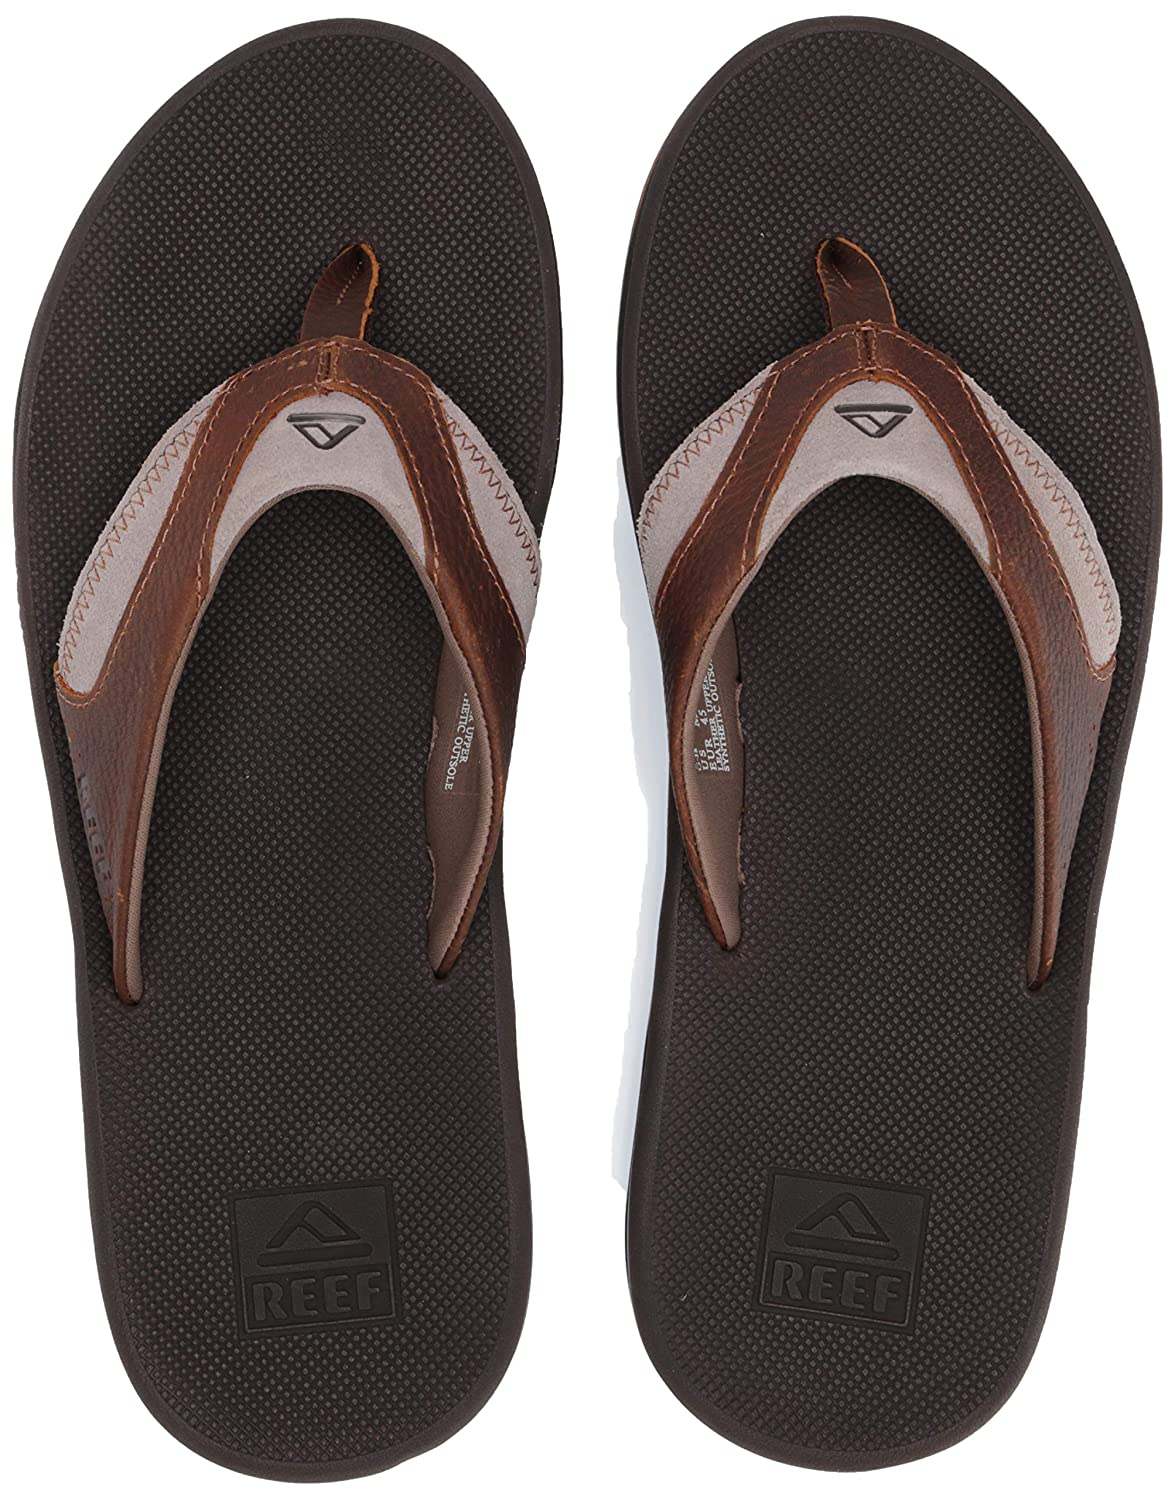 Reef Leather Fanning, Chanclas para Hombre, Marrón (Bro/Brown 4 Br4), 44 EU